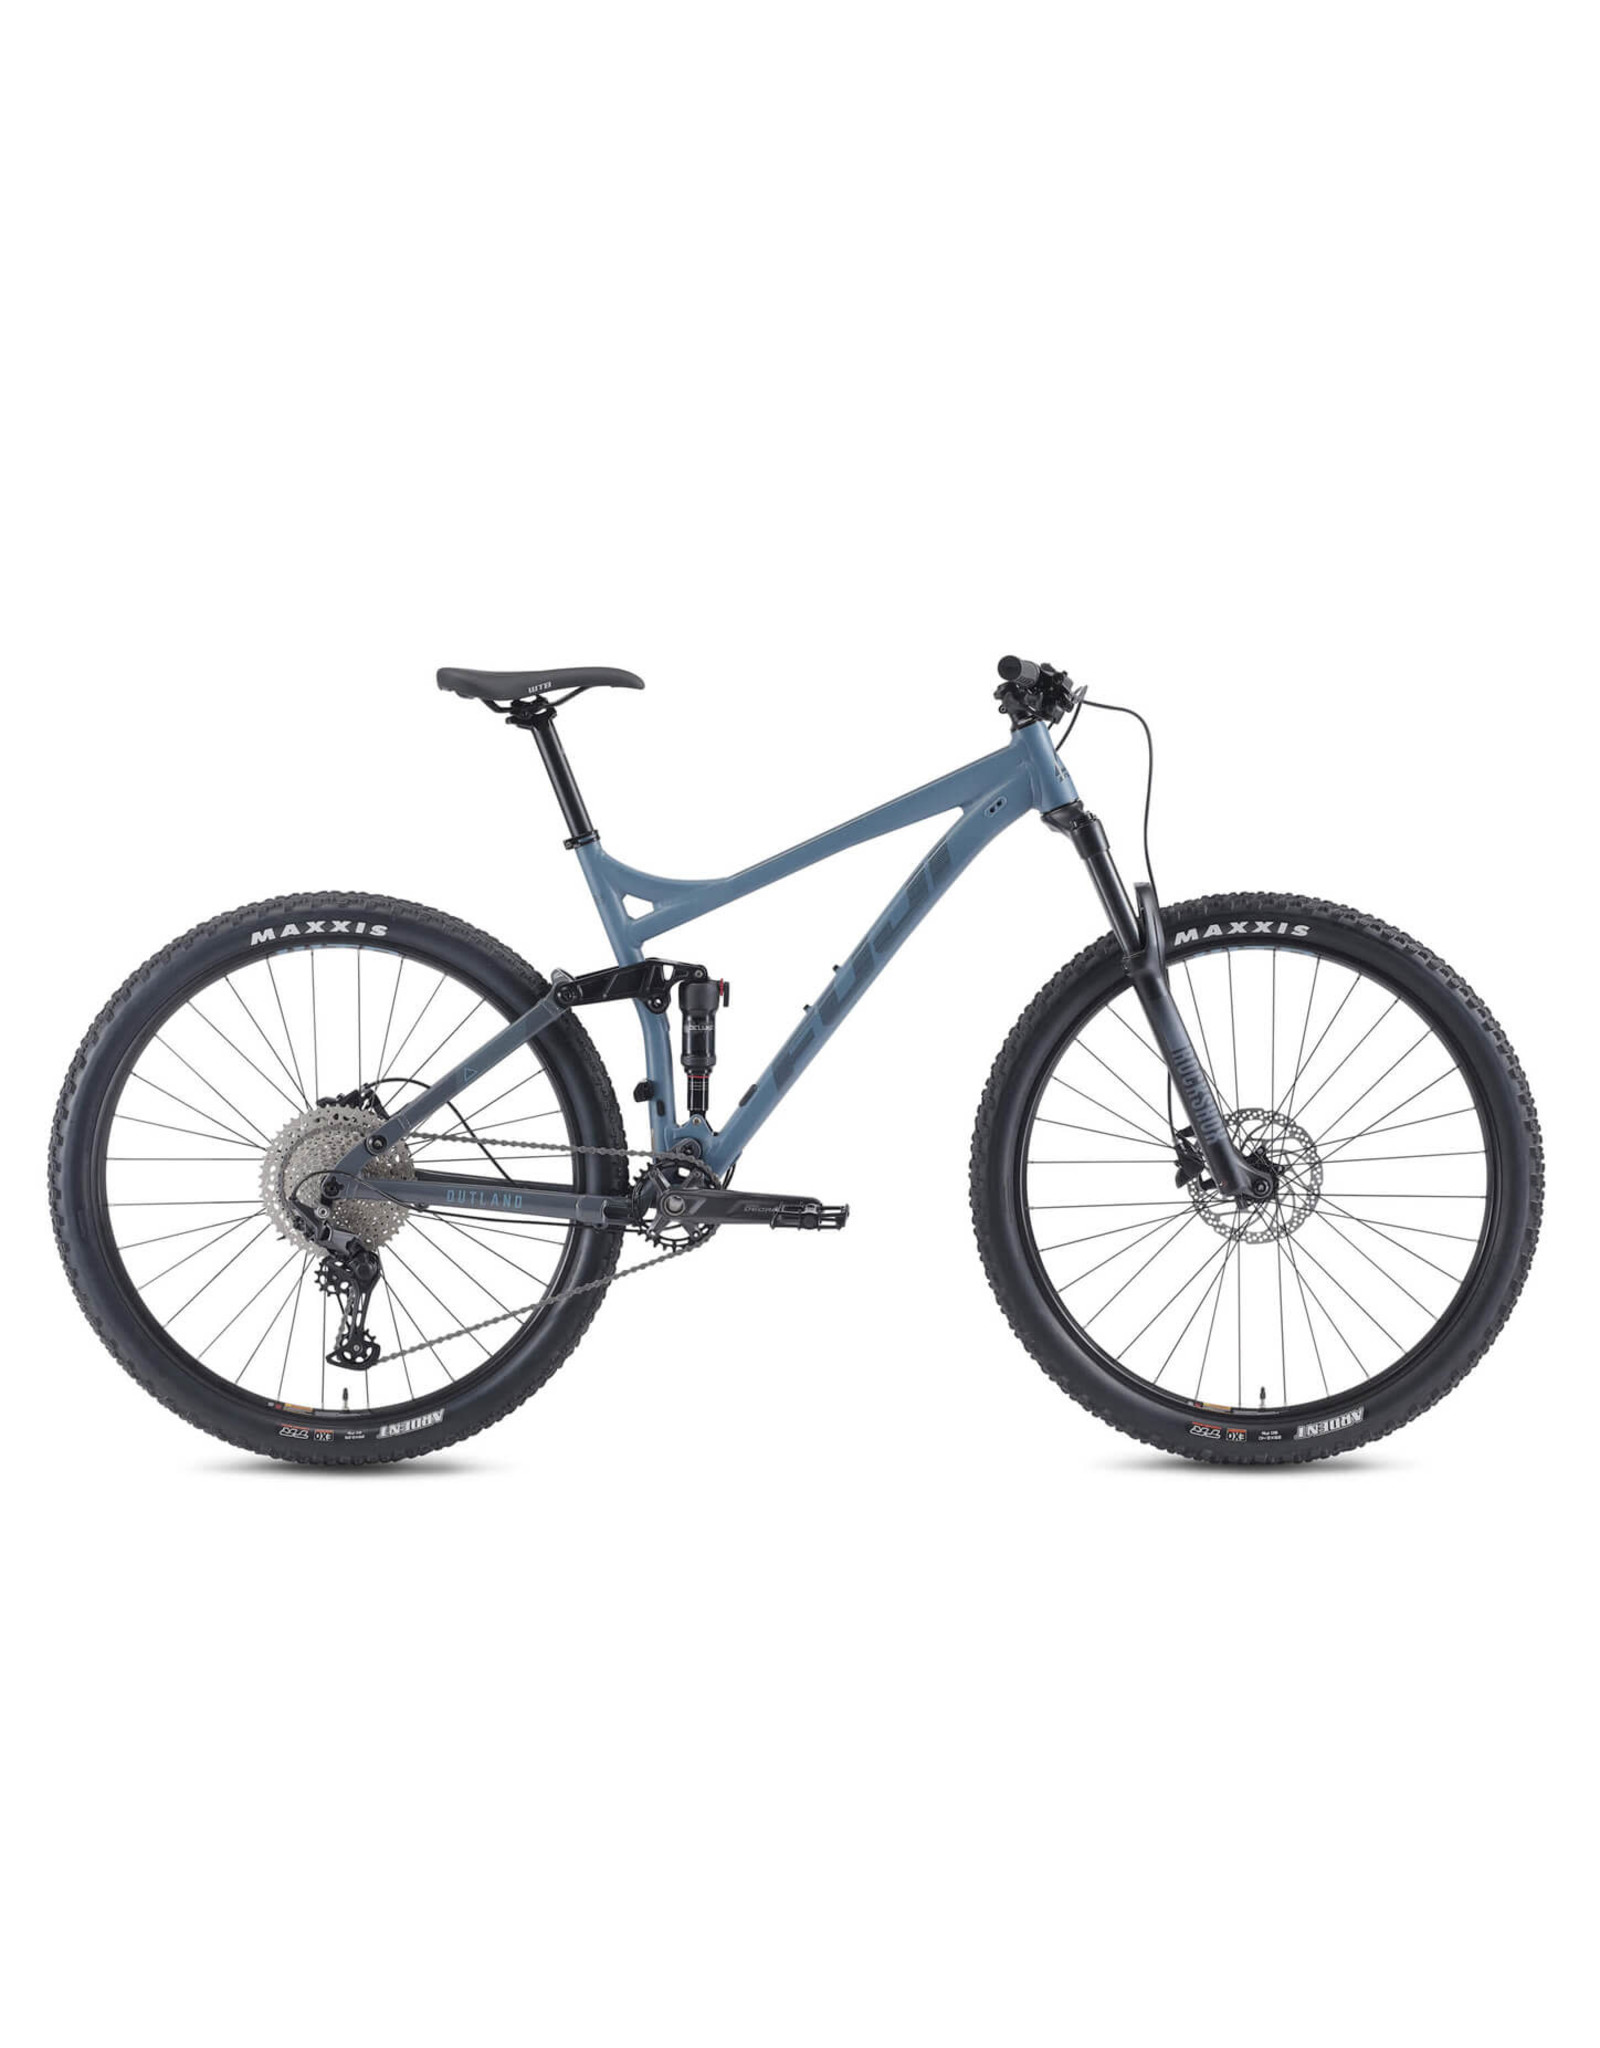 Fuji FUJI OUTLAND 29 1.1 SATIN SLATE MOUNTAIN TRAIL BIKE